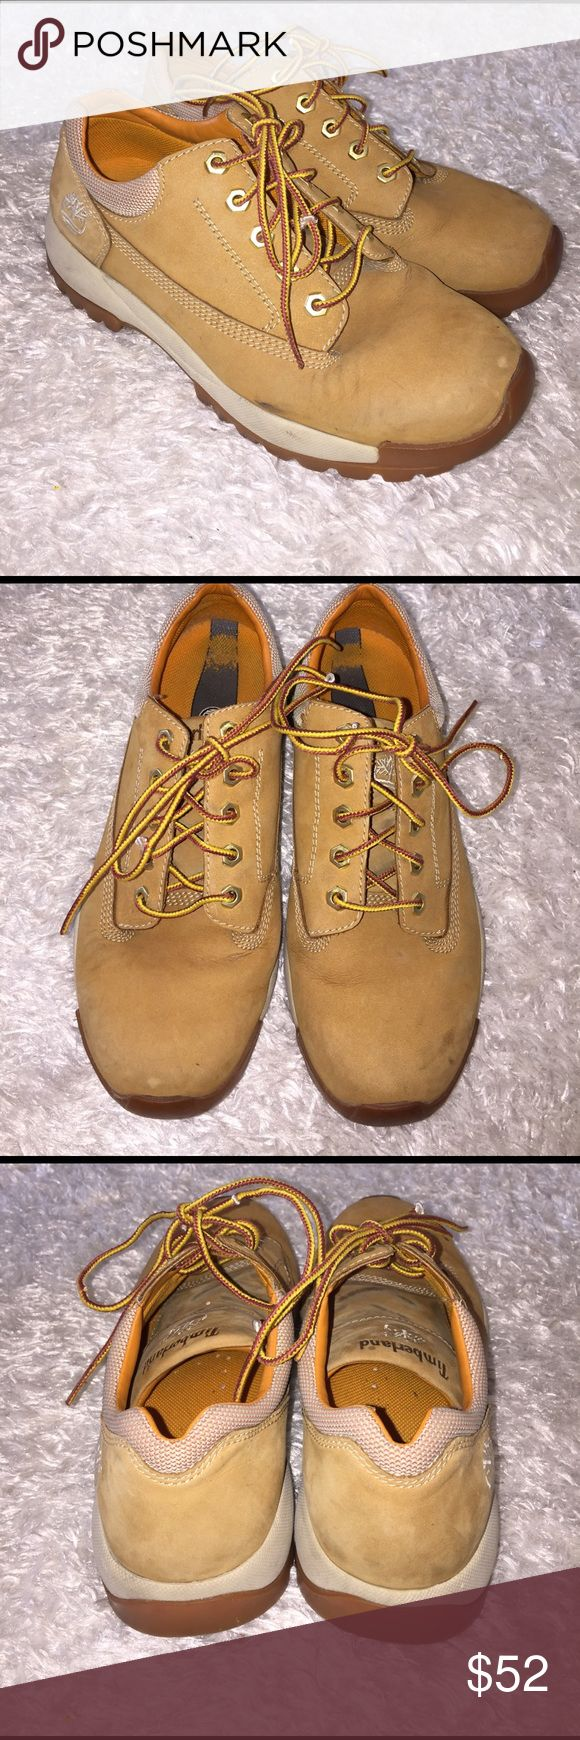 Timberland Low Tops Size7.5 men's. In great condition ! Few blemishes noted in pictures, but overall look nice. Feel free to ask any questions! No trades sorry, & offers thru offer button only! If it is listed as for sale, IT IS AVAILABLE! 😊 Timberland Shoes Boots